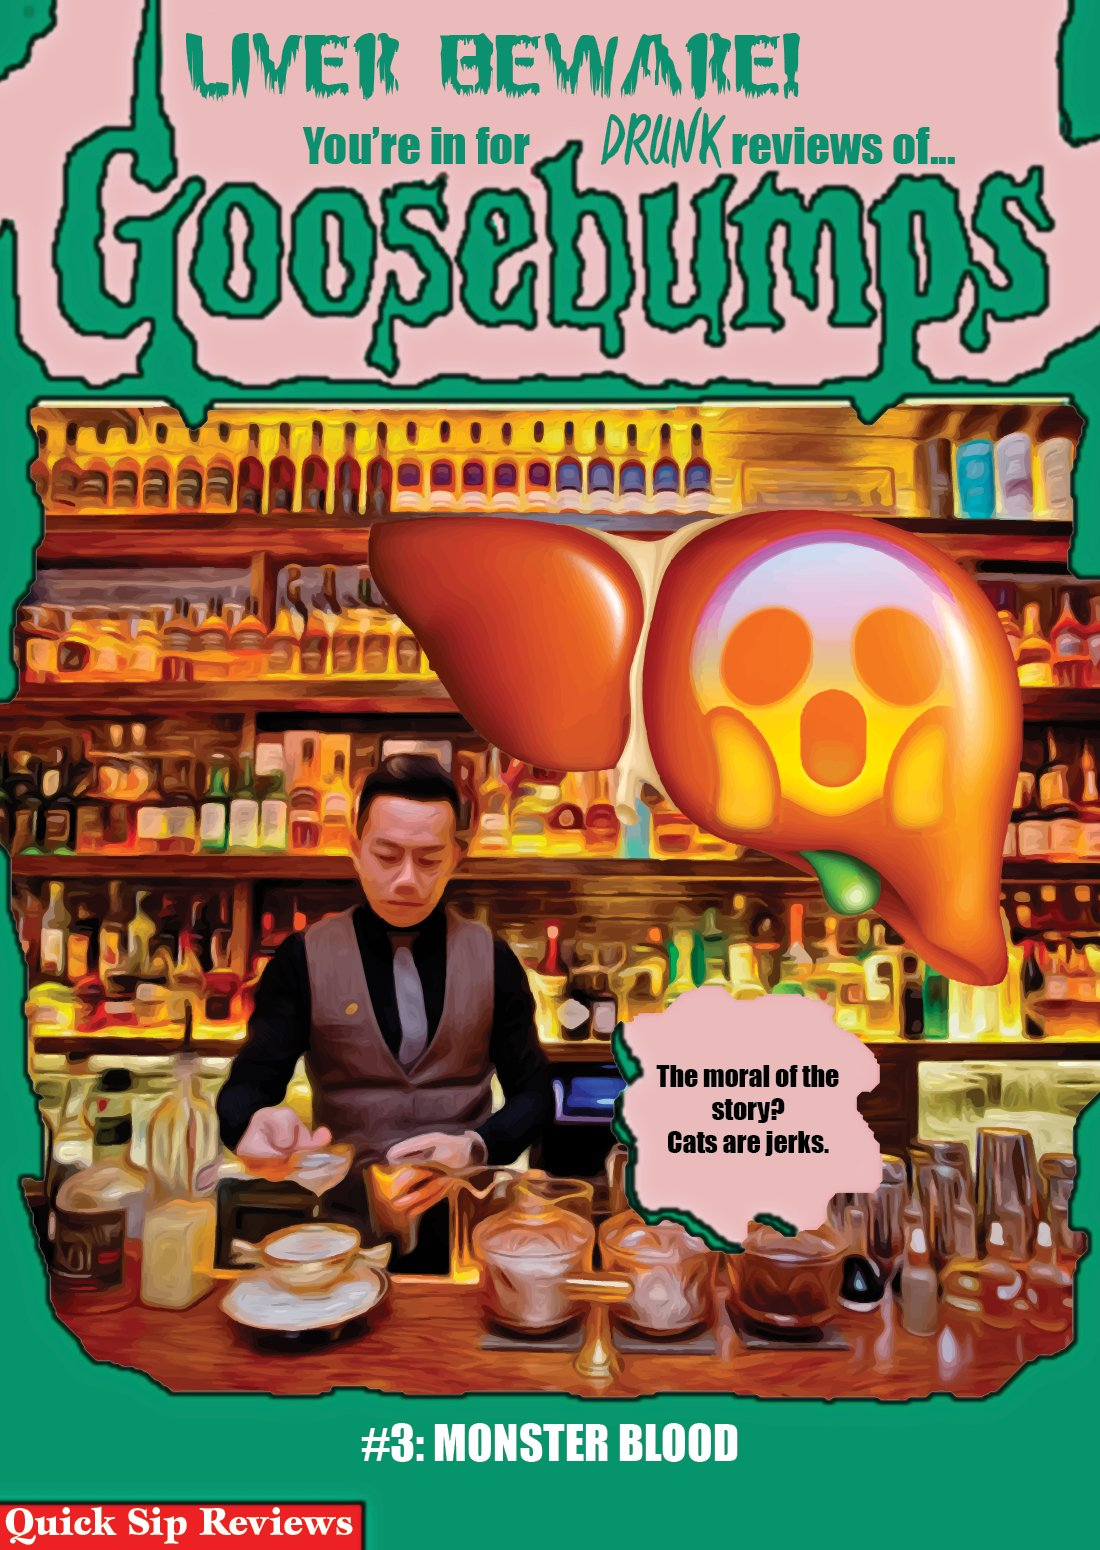 Which, FYI, my drunken review of Goosebumps #3: Monster Blood, will kick off the 2017 series. Here's a peek! https://t.co/V6bYnTU2x5